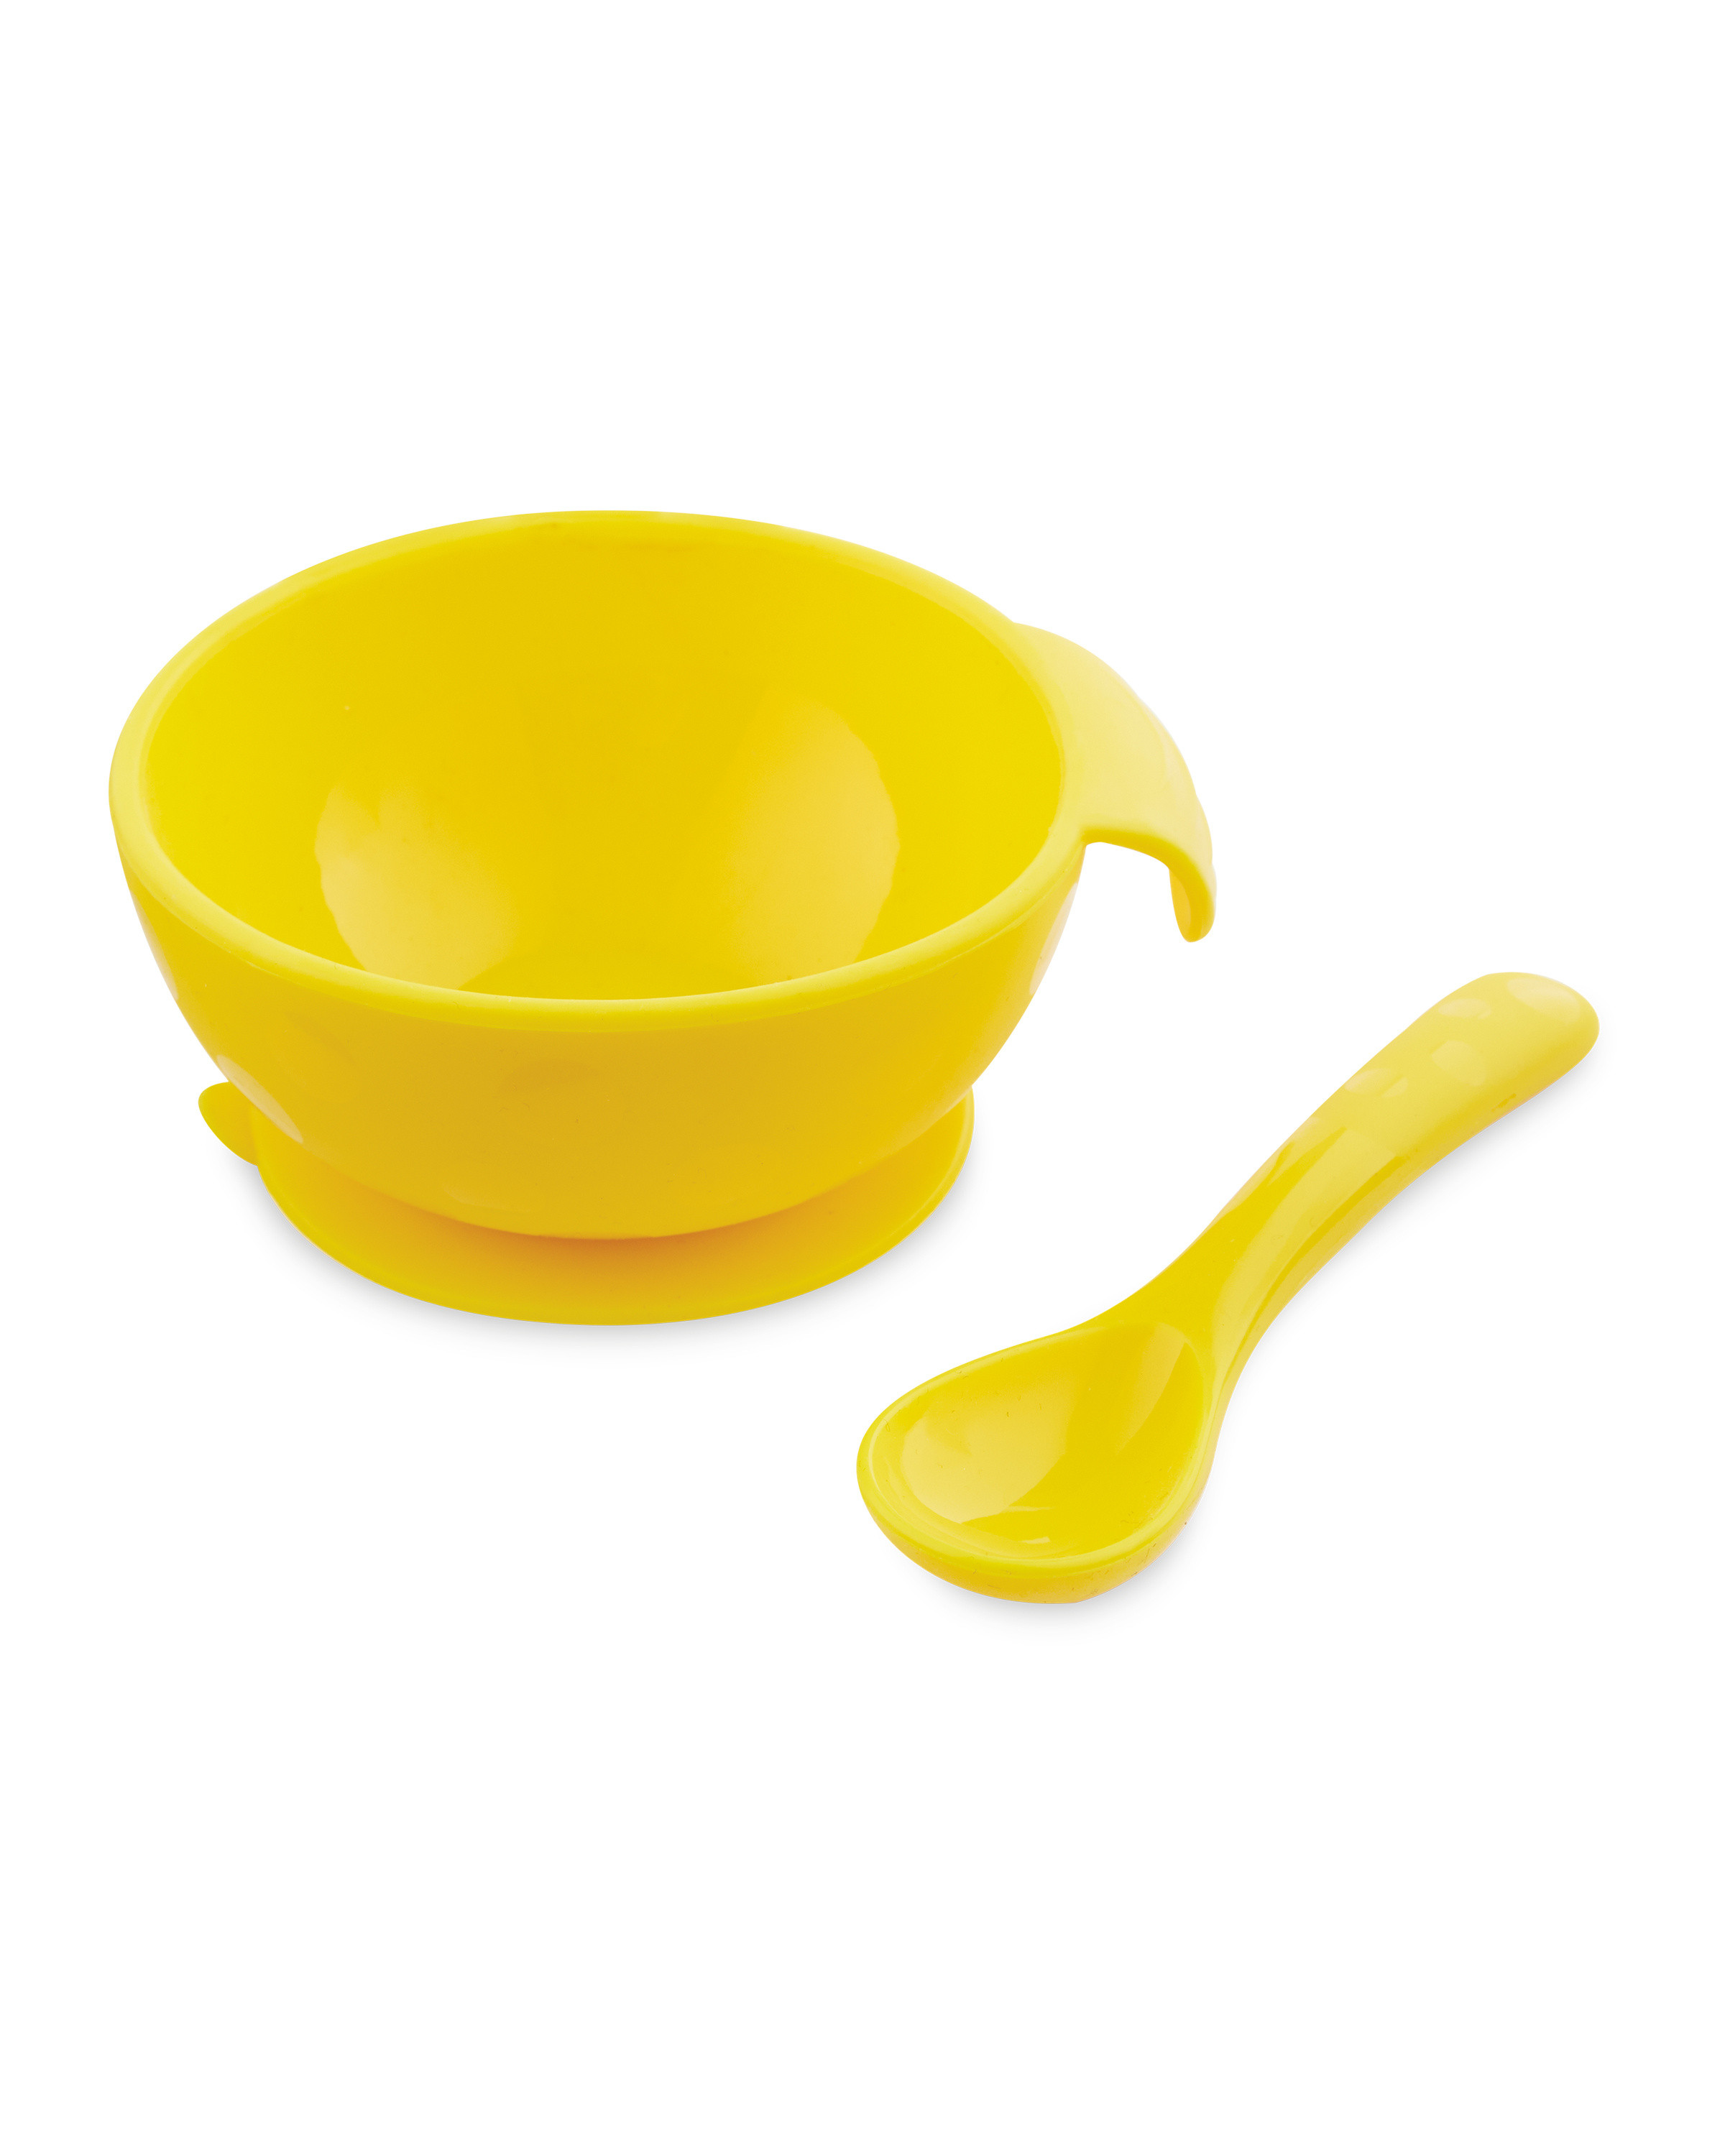 Nuby Silicone Bowl And Spoon Set